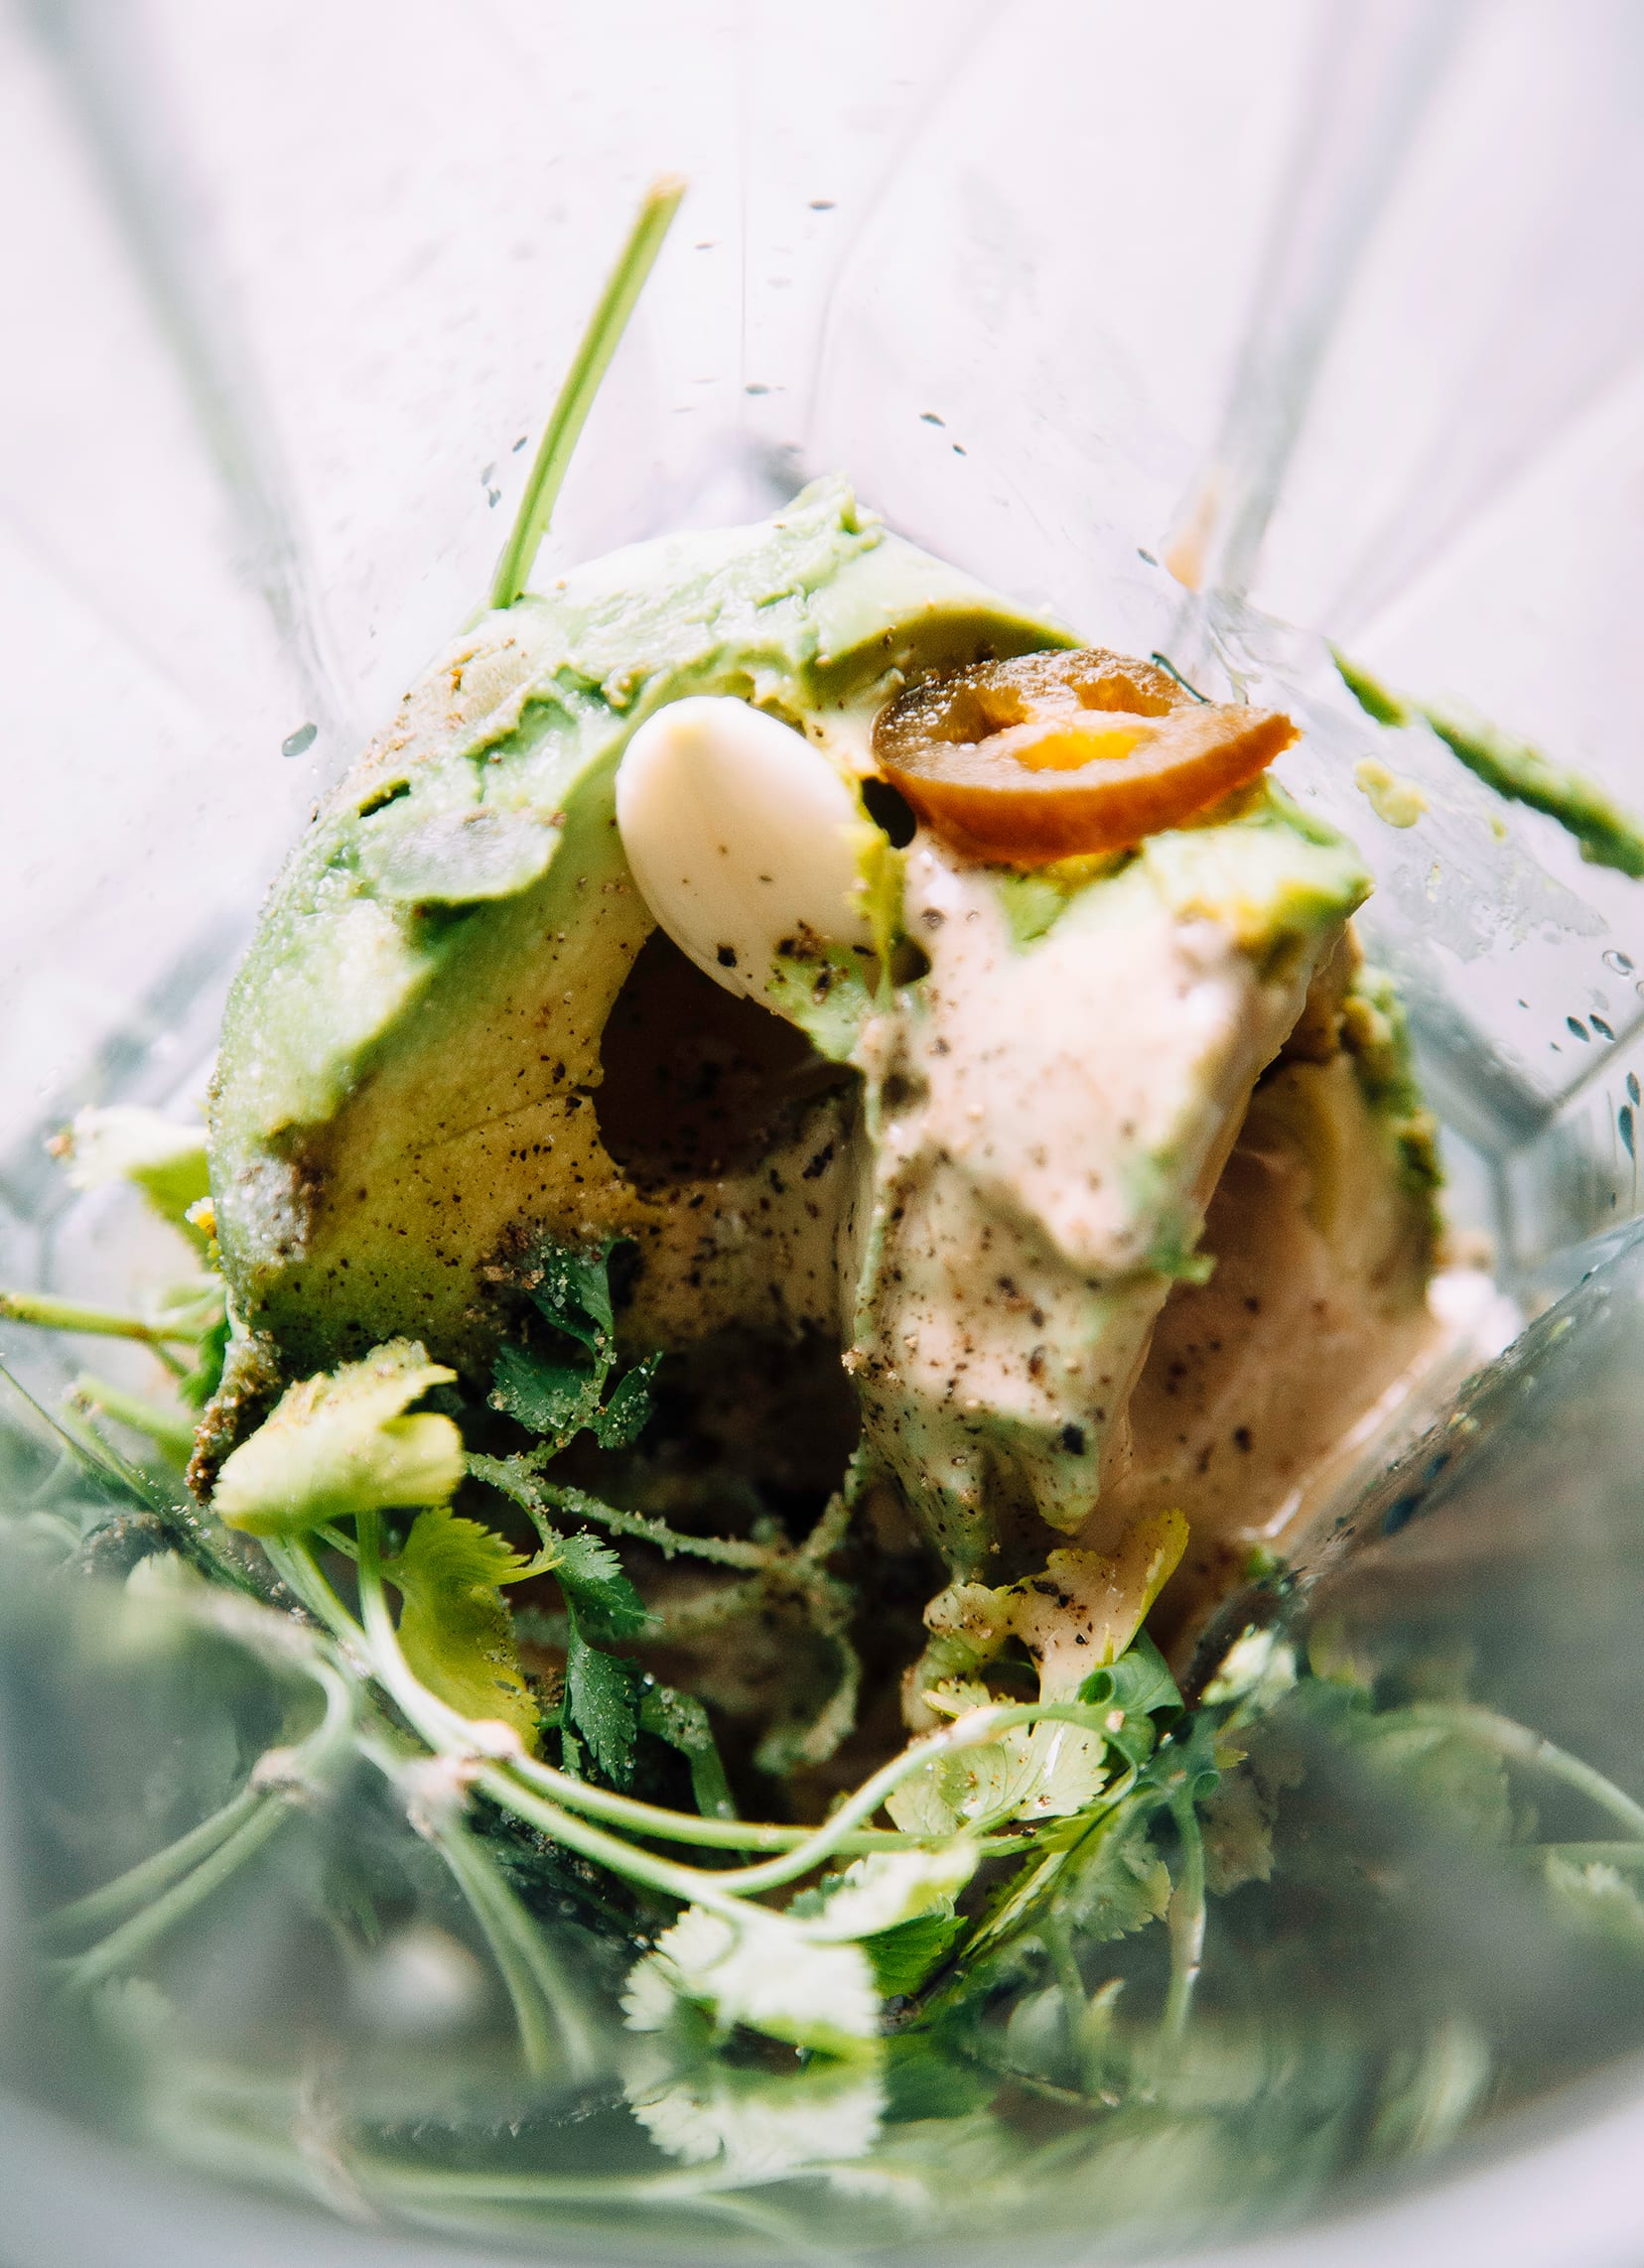 Overhead shot of the contents of a blender pitcher: avocado, cilantro, tahini, jalapeno, garlic, salt, and pepper.